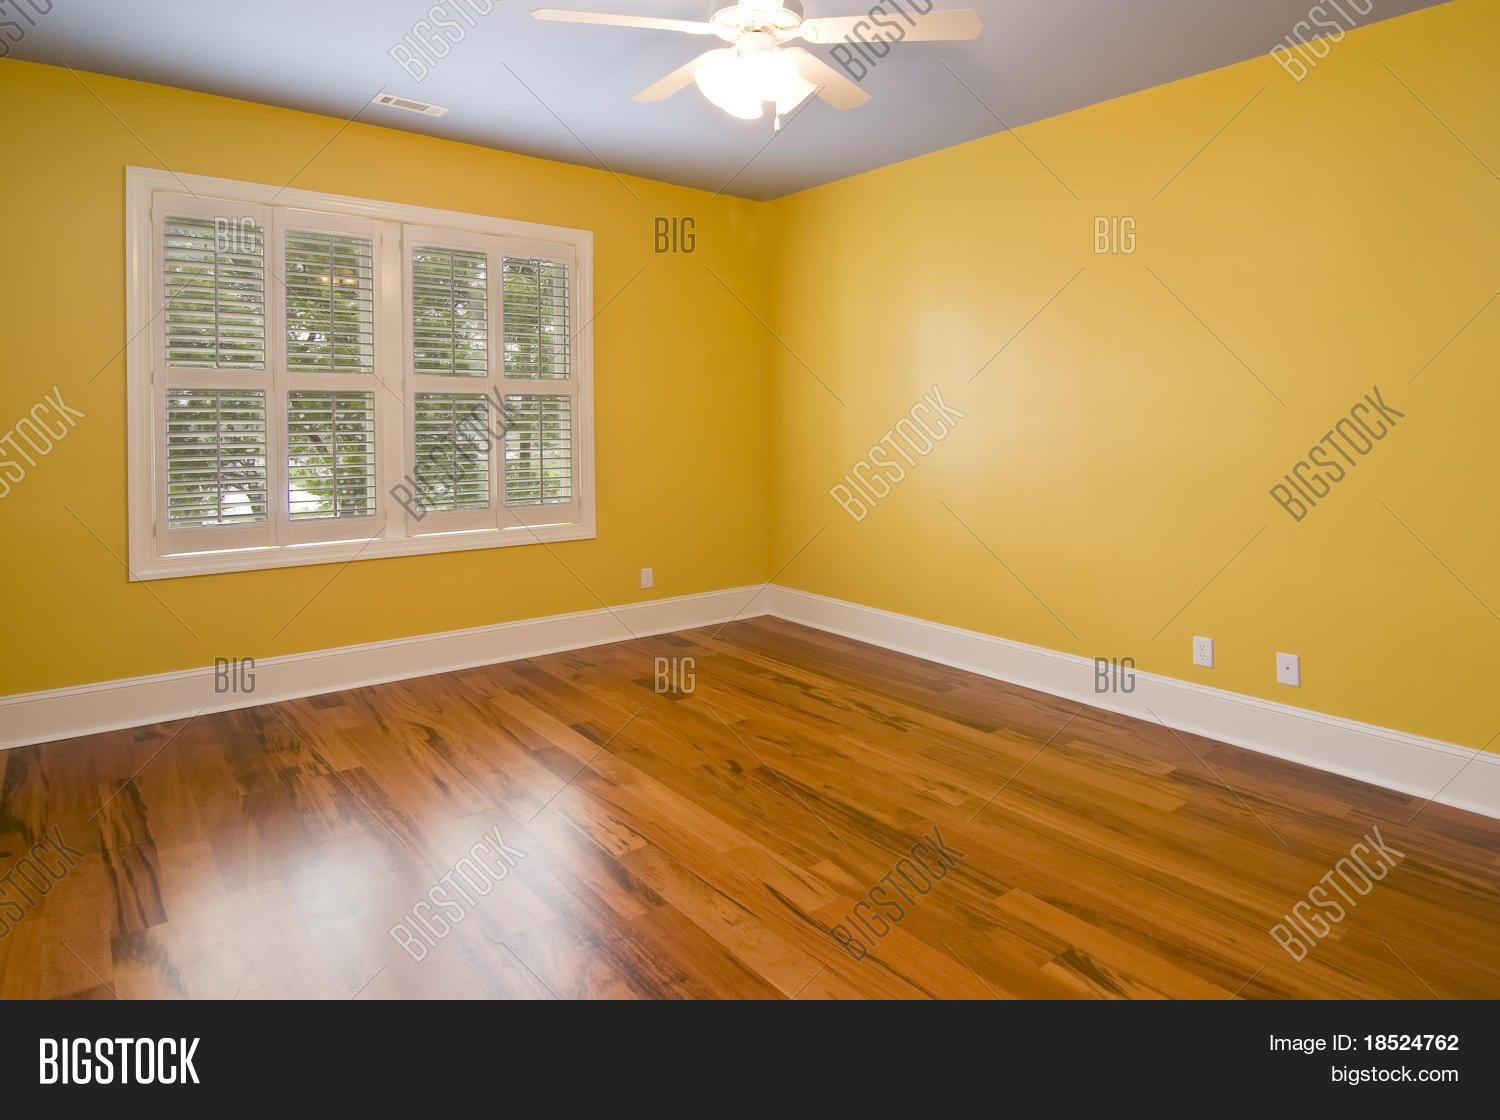 Empty Room Yellow Walls View Image Photo Bigstock